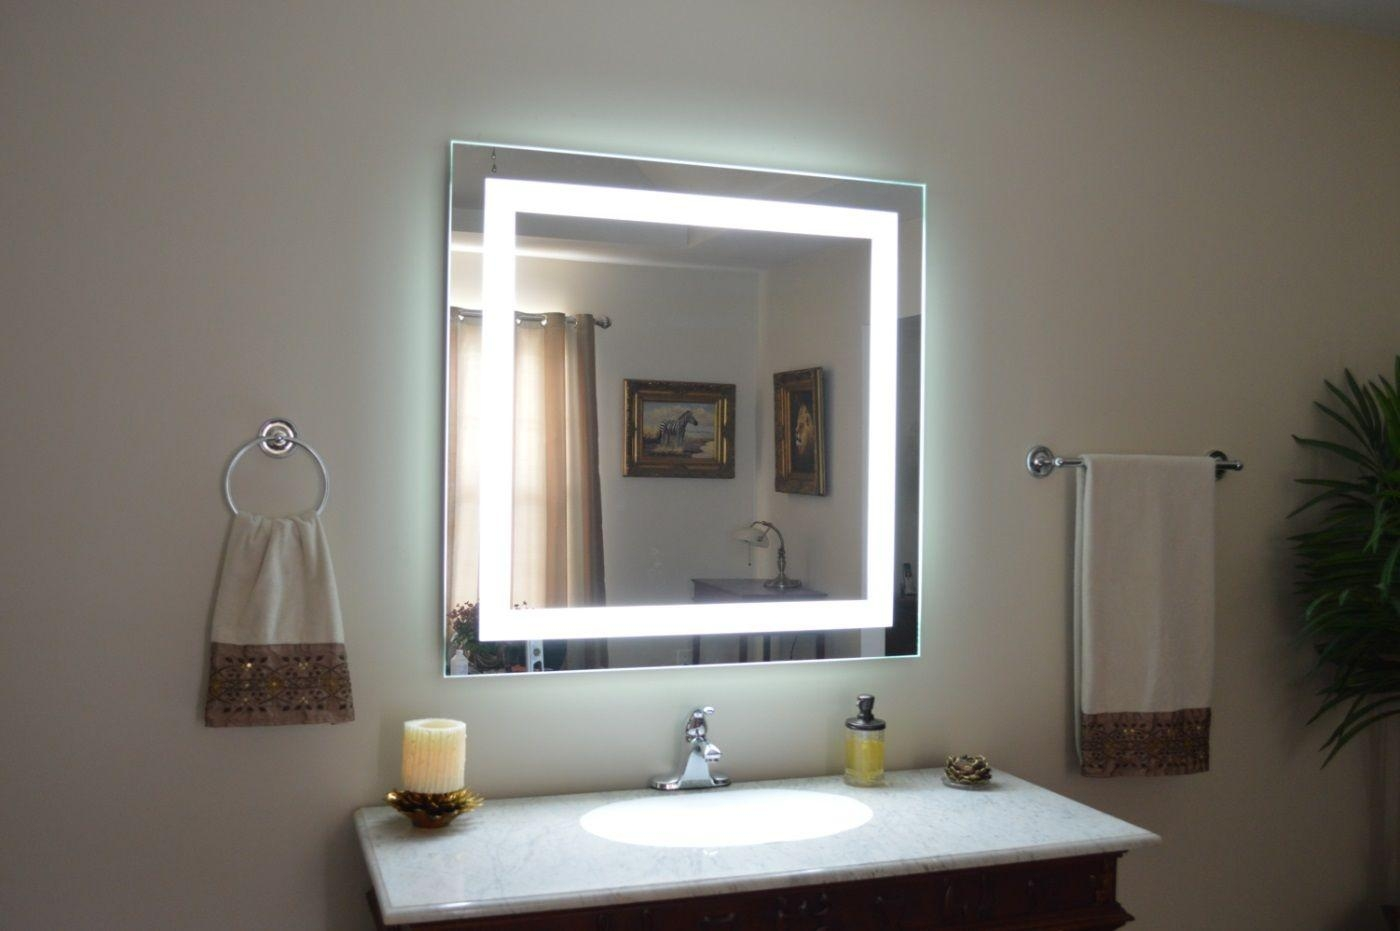 Bathroom Cabinets : Led Bathroom Vanity Lights Led Lights For Regarding Mirrors With Lights For Bathroom (View 5 of 20)